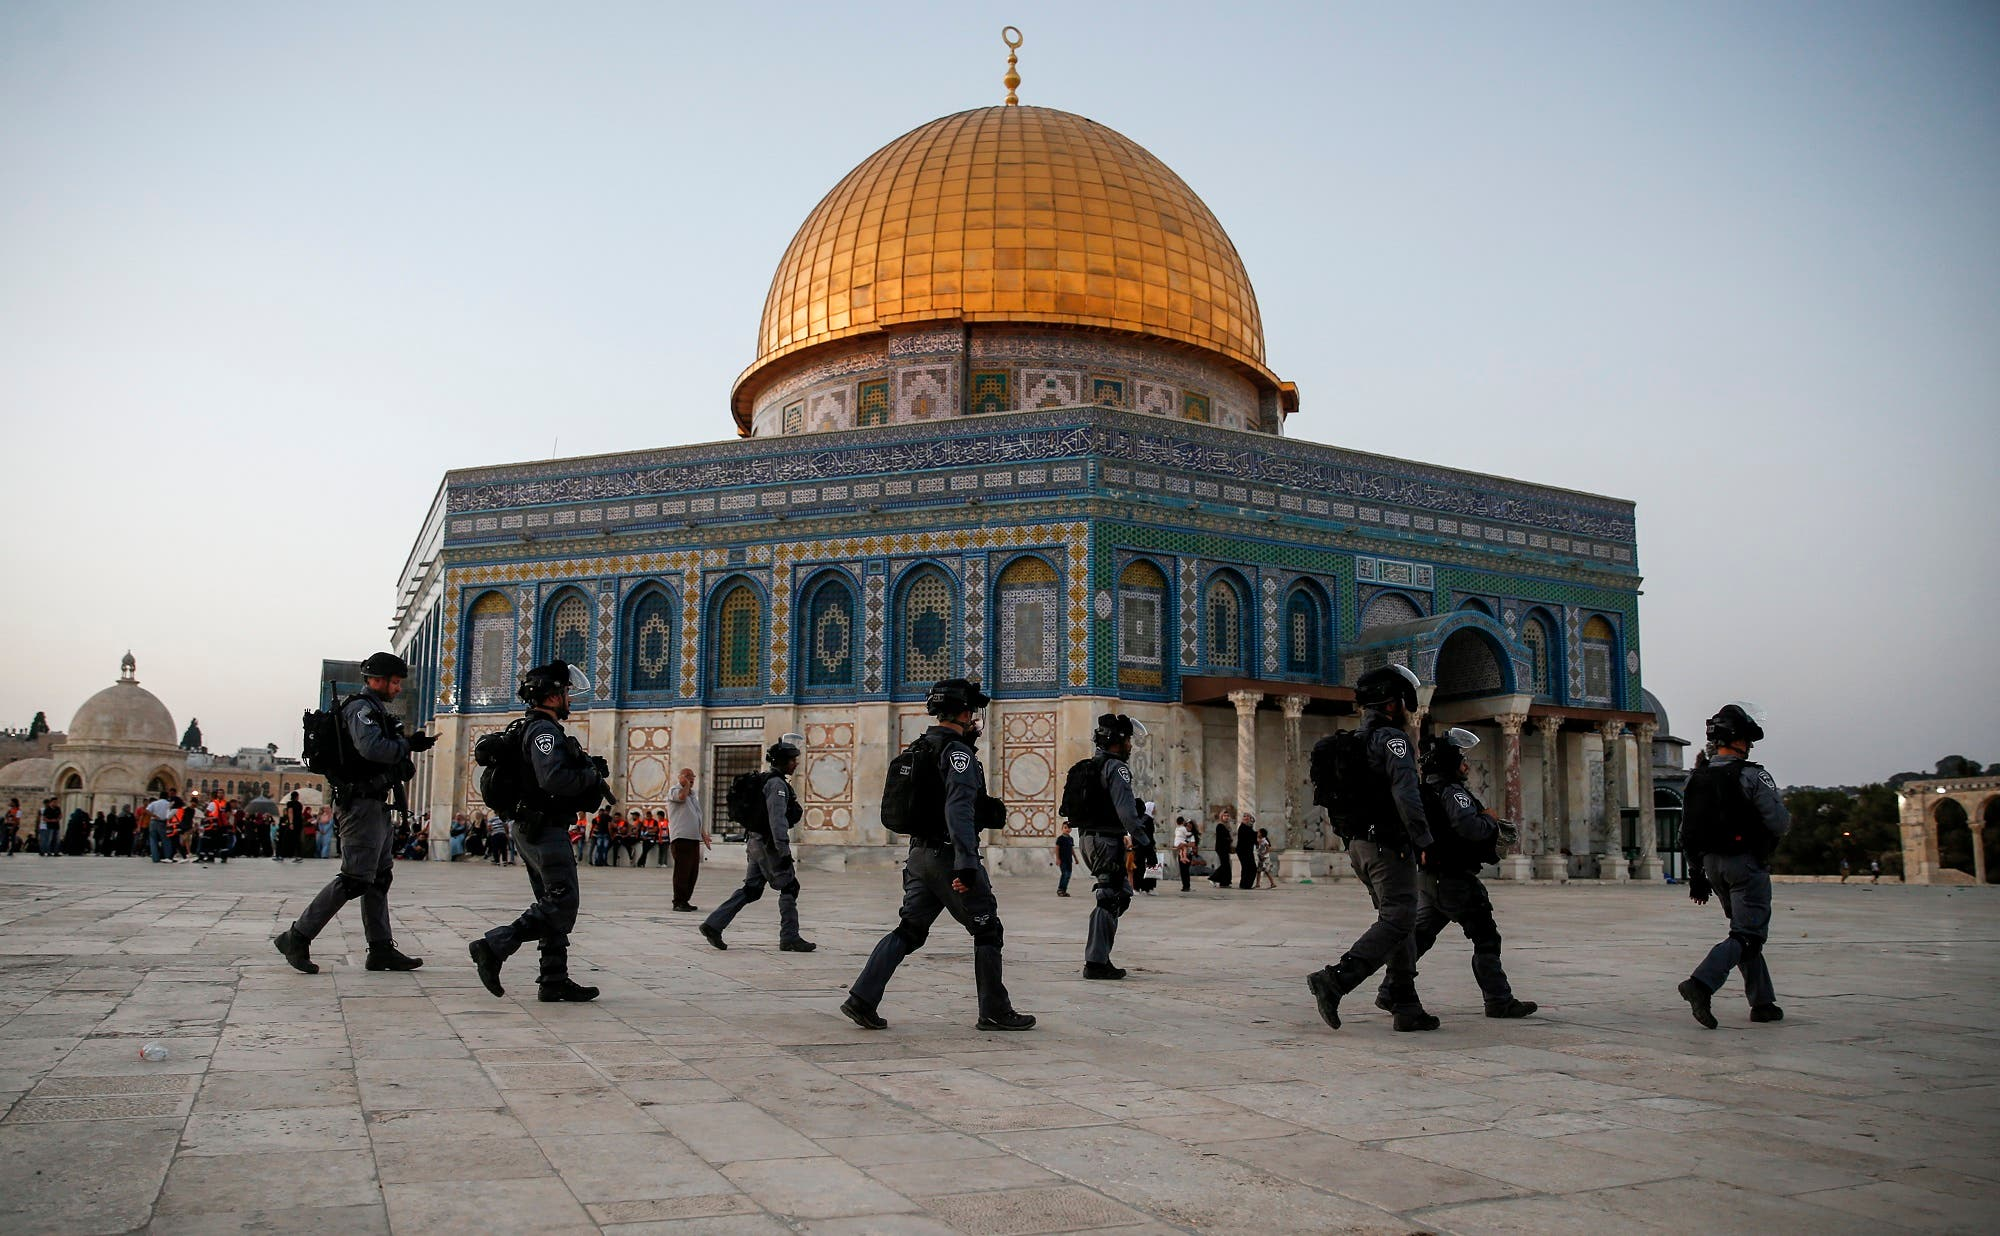 Members of the Israeli security forces walk past the al-Aqsa compound in the Old City of Jerusalem on July 27, 2017. (AFP)